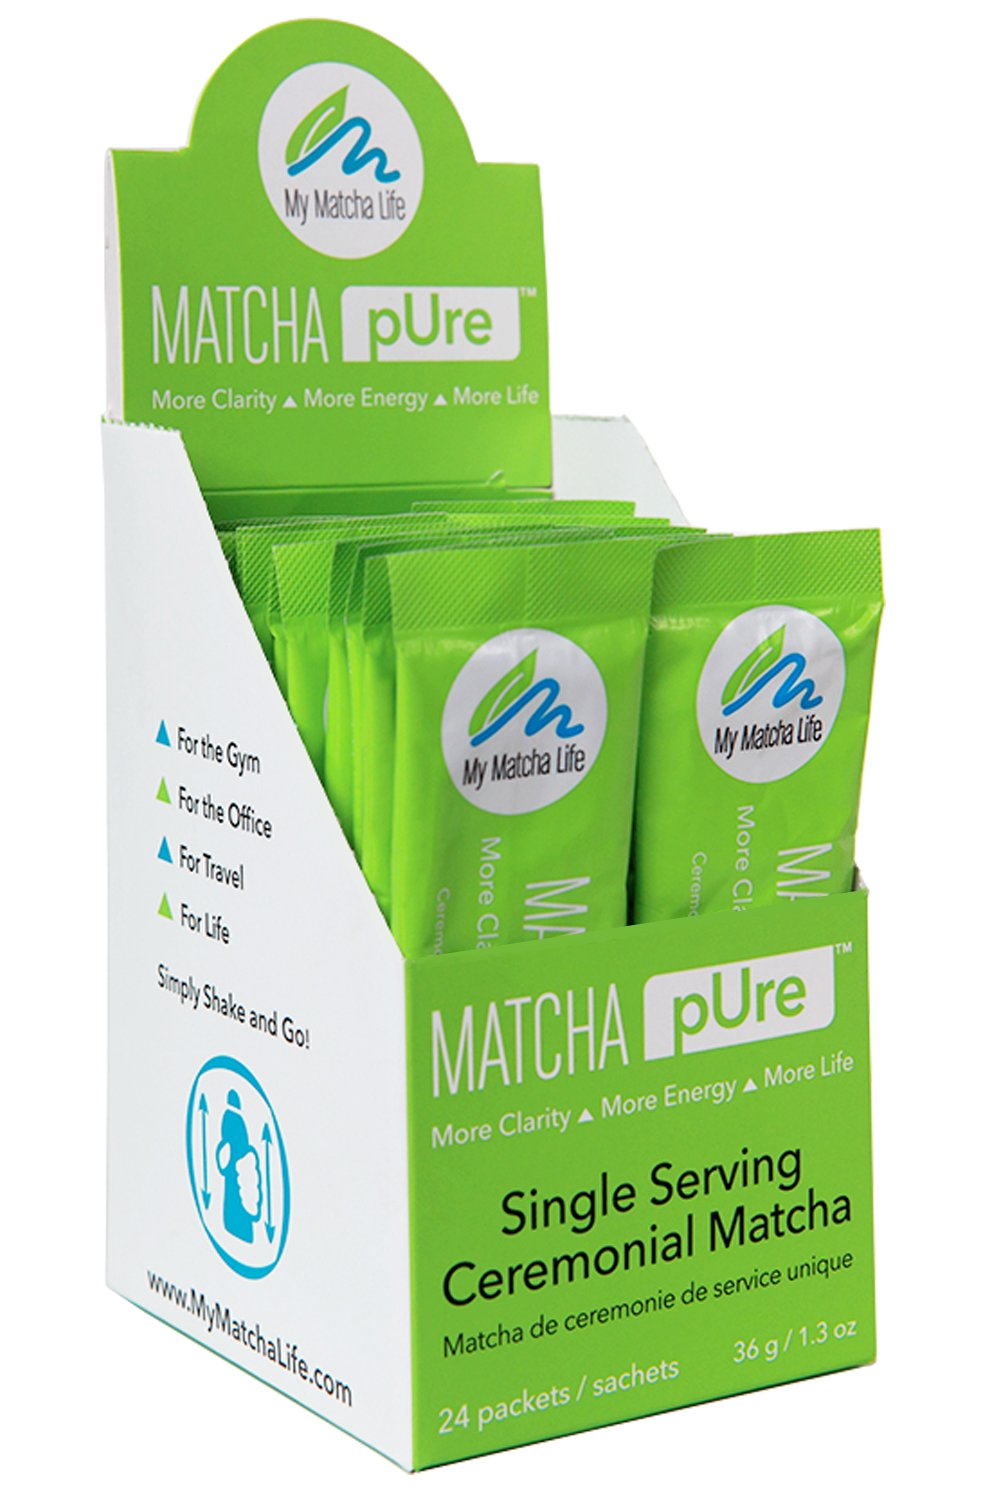 Matcha Single Packets To Go - 100% Ceremonial Matcha Green Tea Powder from Japan - Great Taste - Hand-Picked - No Filler, Sugars or Sweeteners. Pure Japanese Matcha (24 pk)